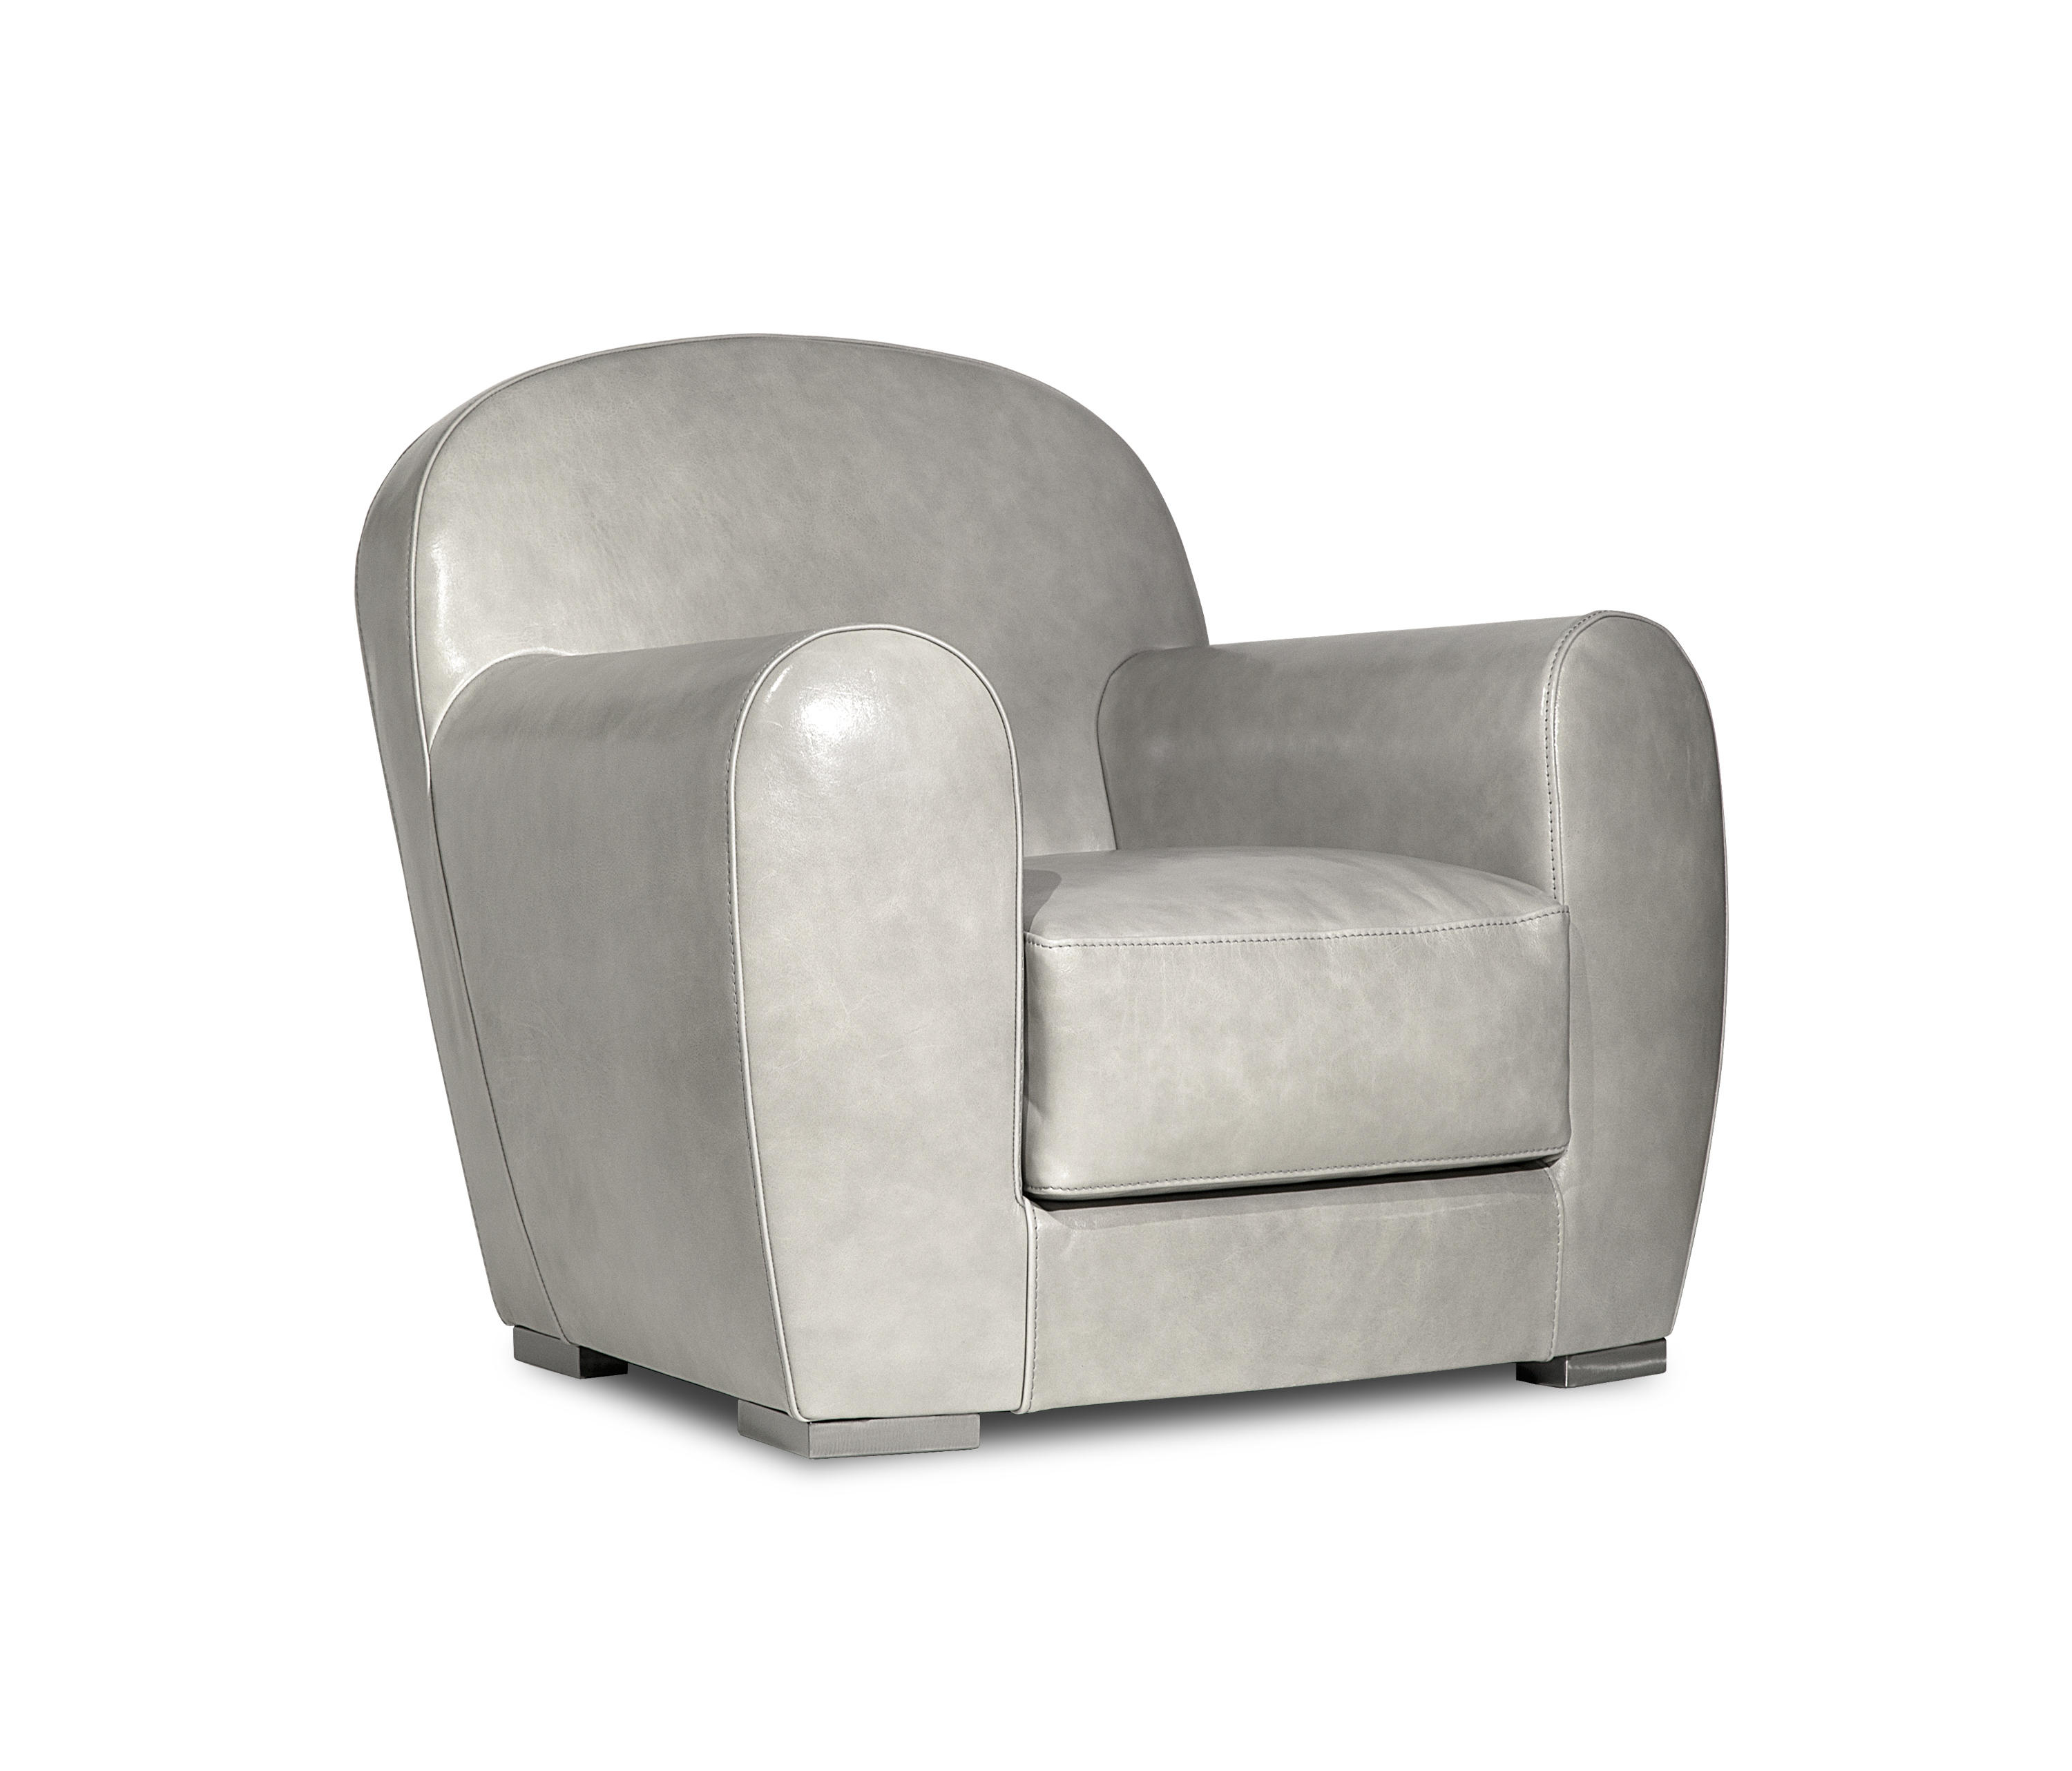 Baxter Sessel Amburgo Armchair Sessel Von Baxter Architonic